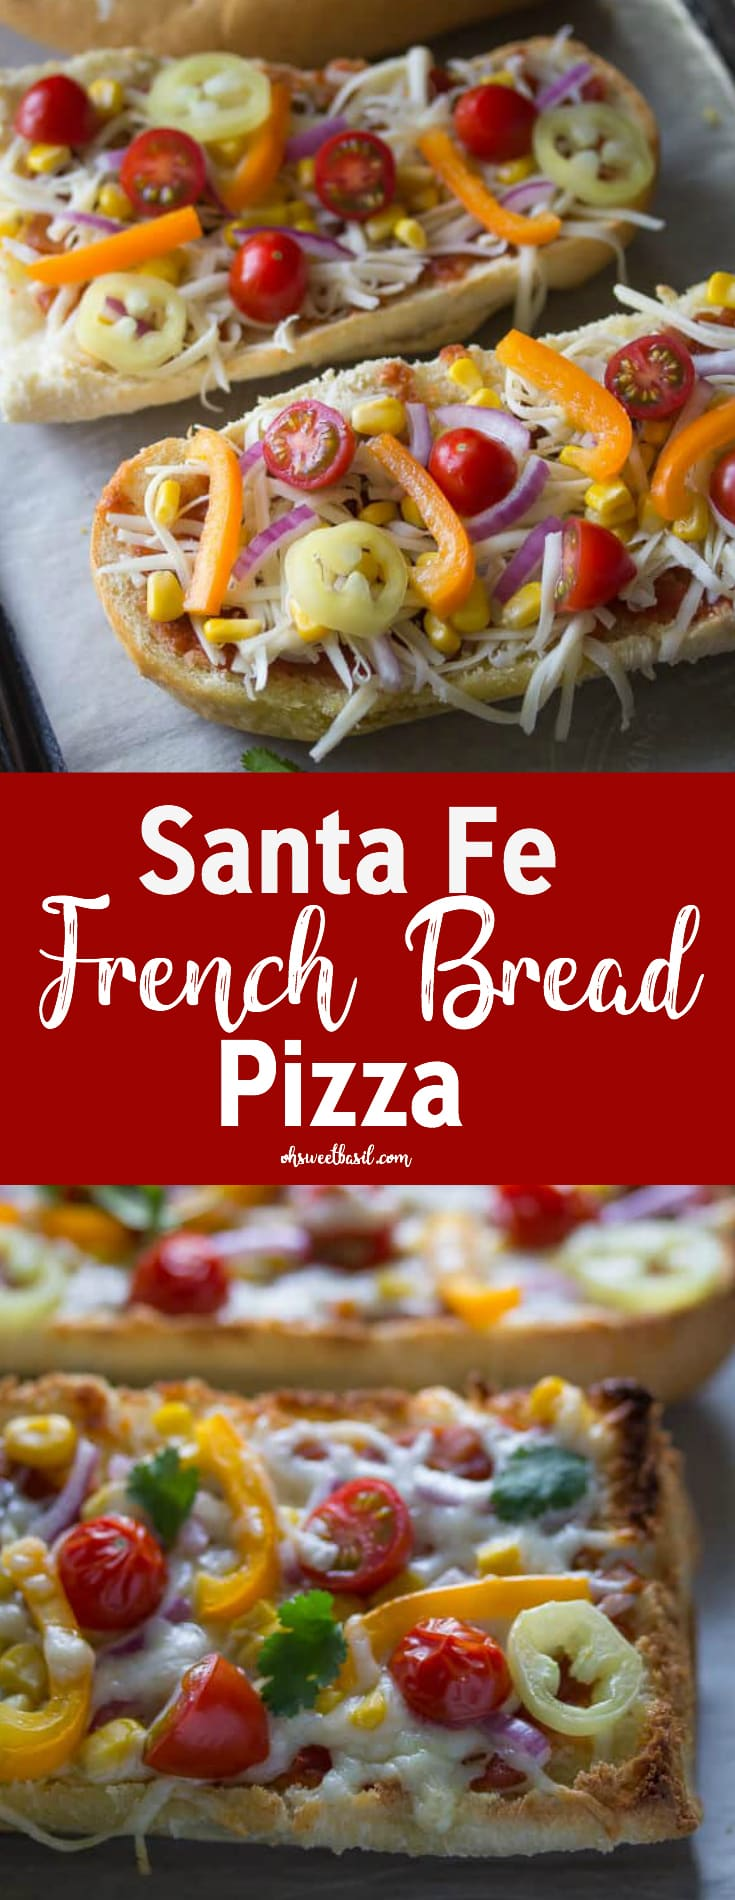 Santa Fe French Bread Pizza with cheese, tomatoes, salsa and bell peppers